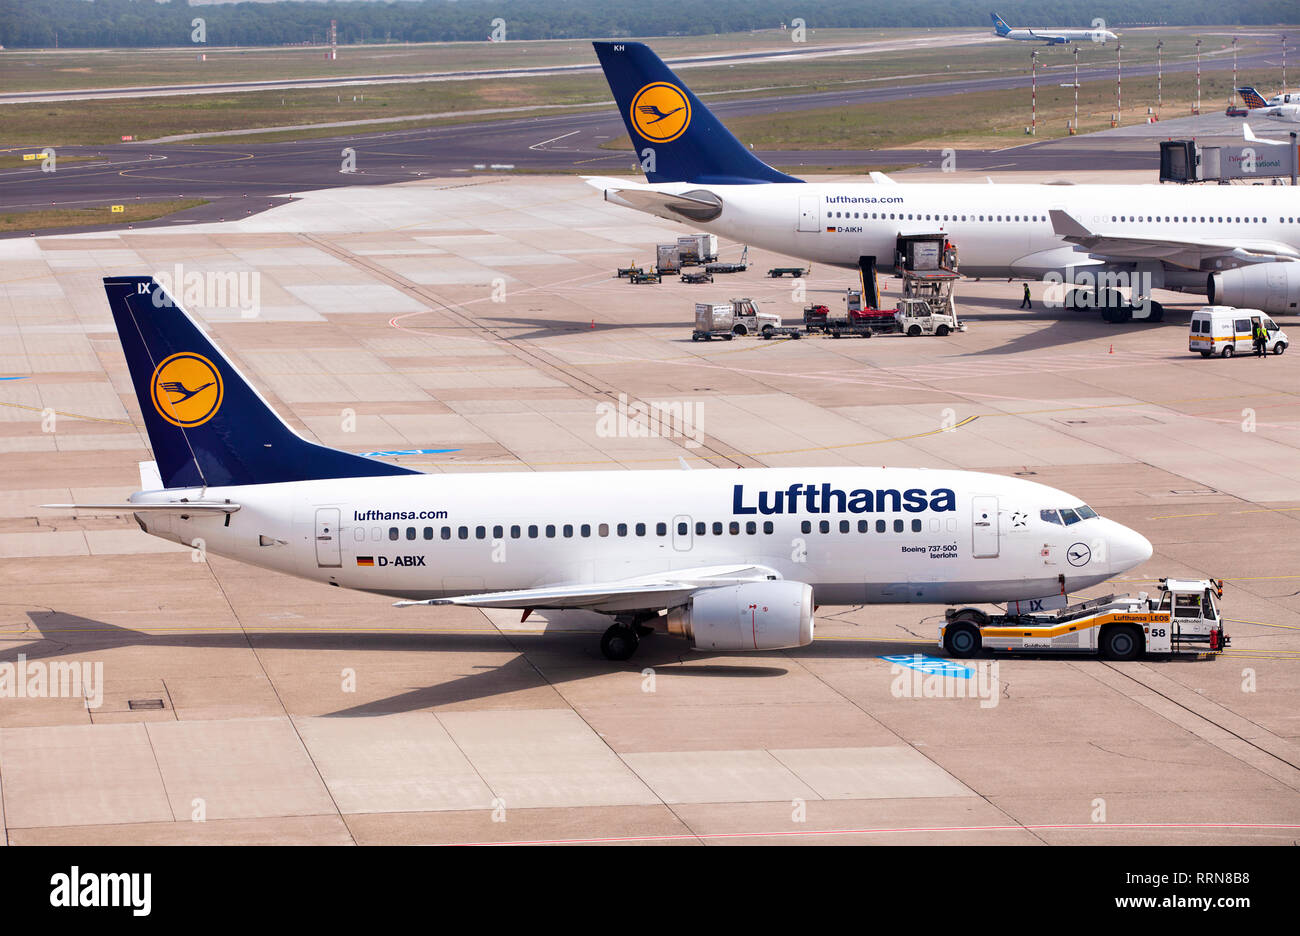 Passenger aircraft of Lufthansa German airlines before takeoff on a runway of an airport in Germany - Stock Image